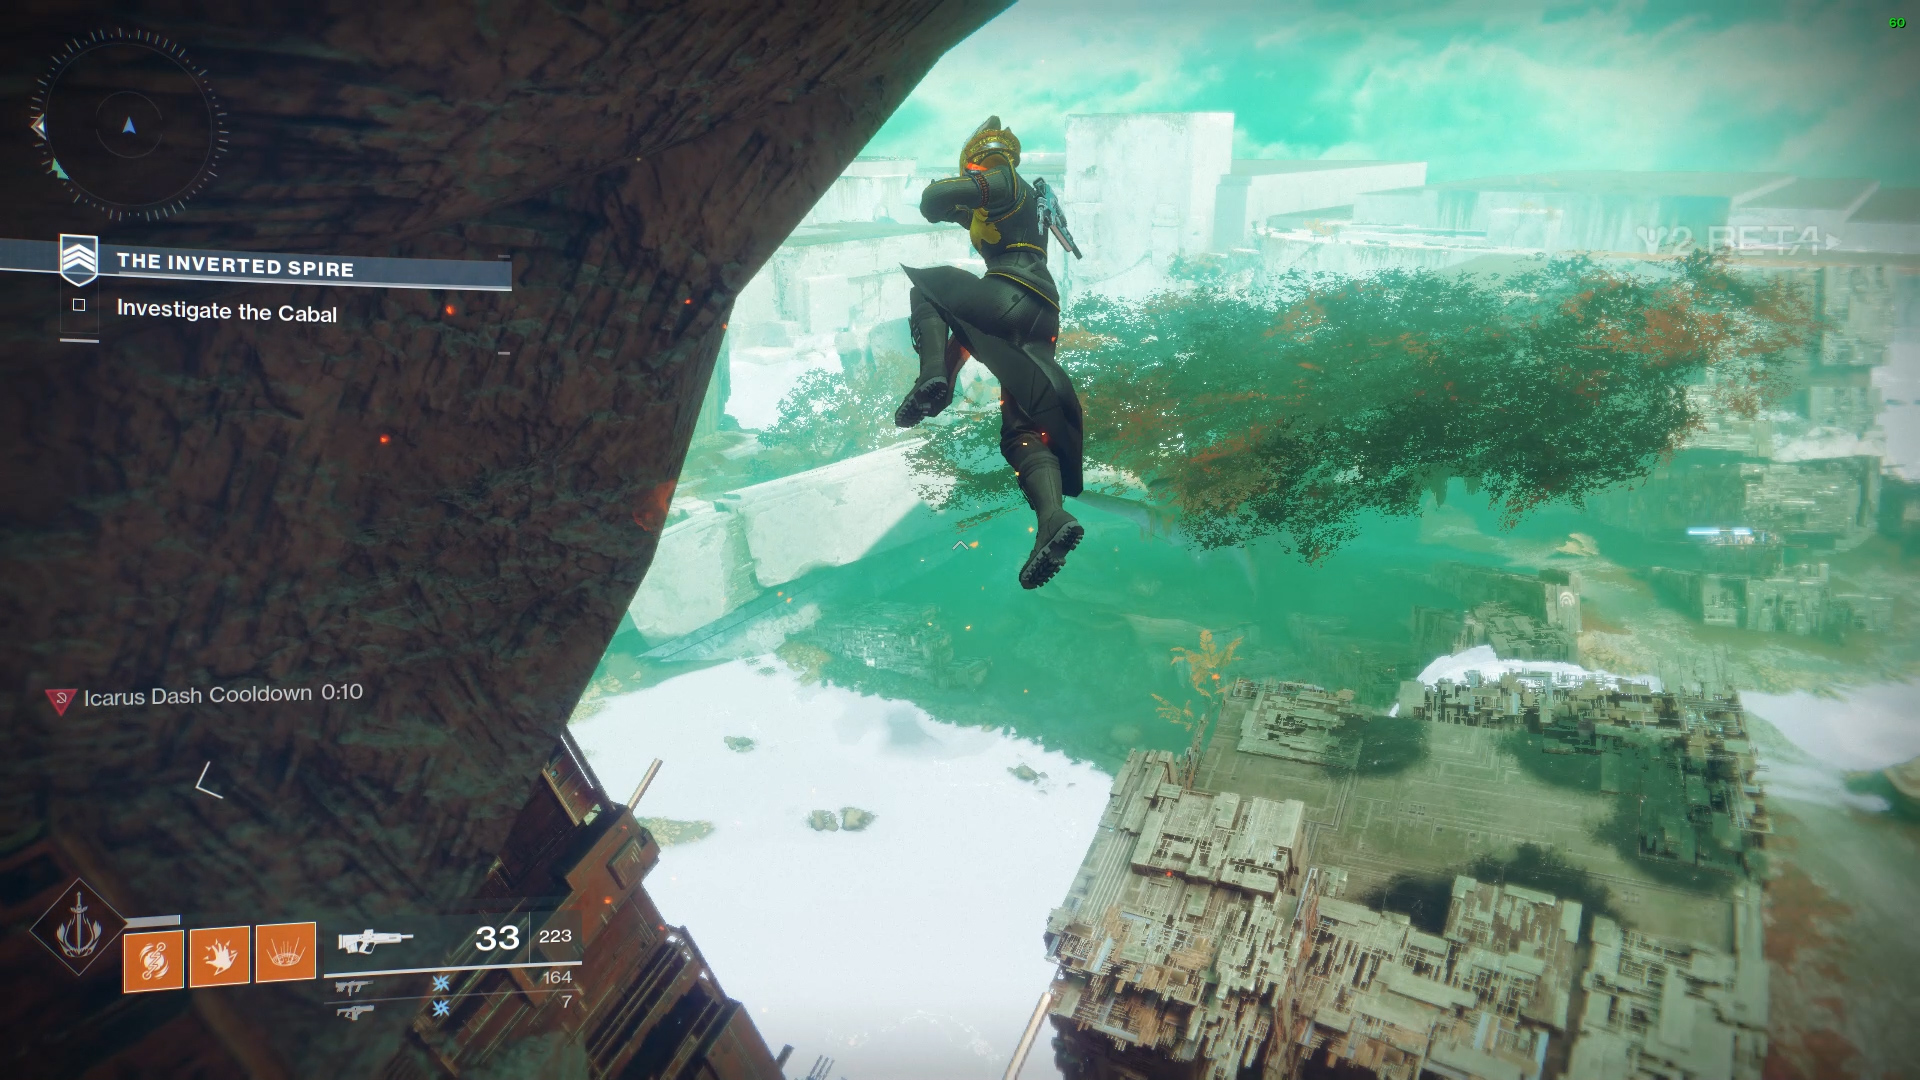 The Icarus Dash is essentially the move from the Twilight Garrison, albeit on a much longer cooldown.